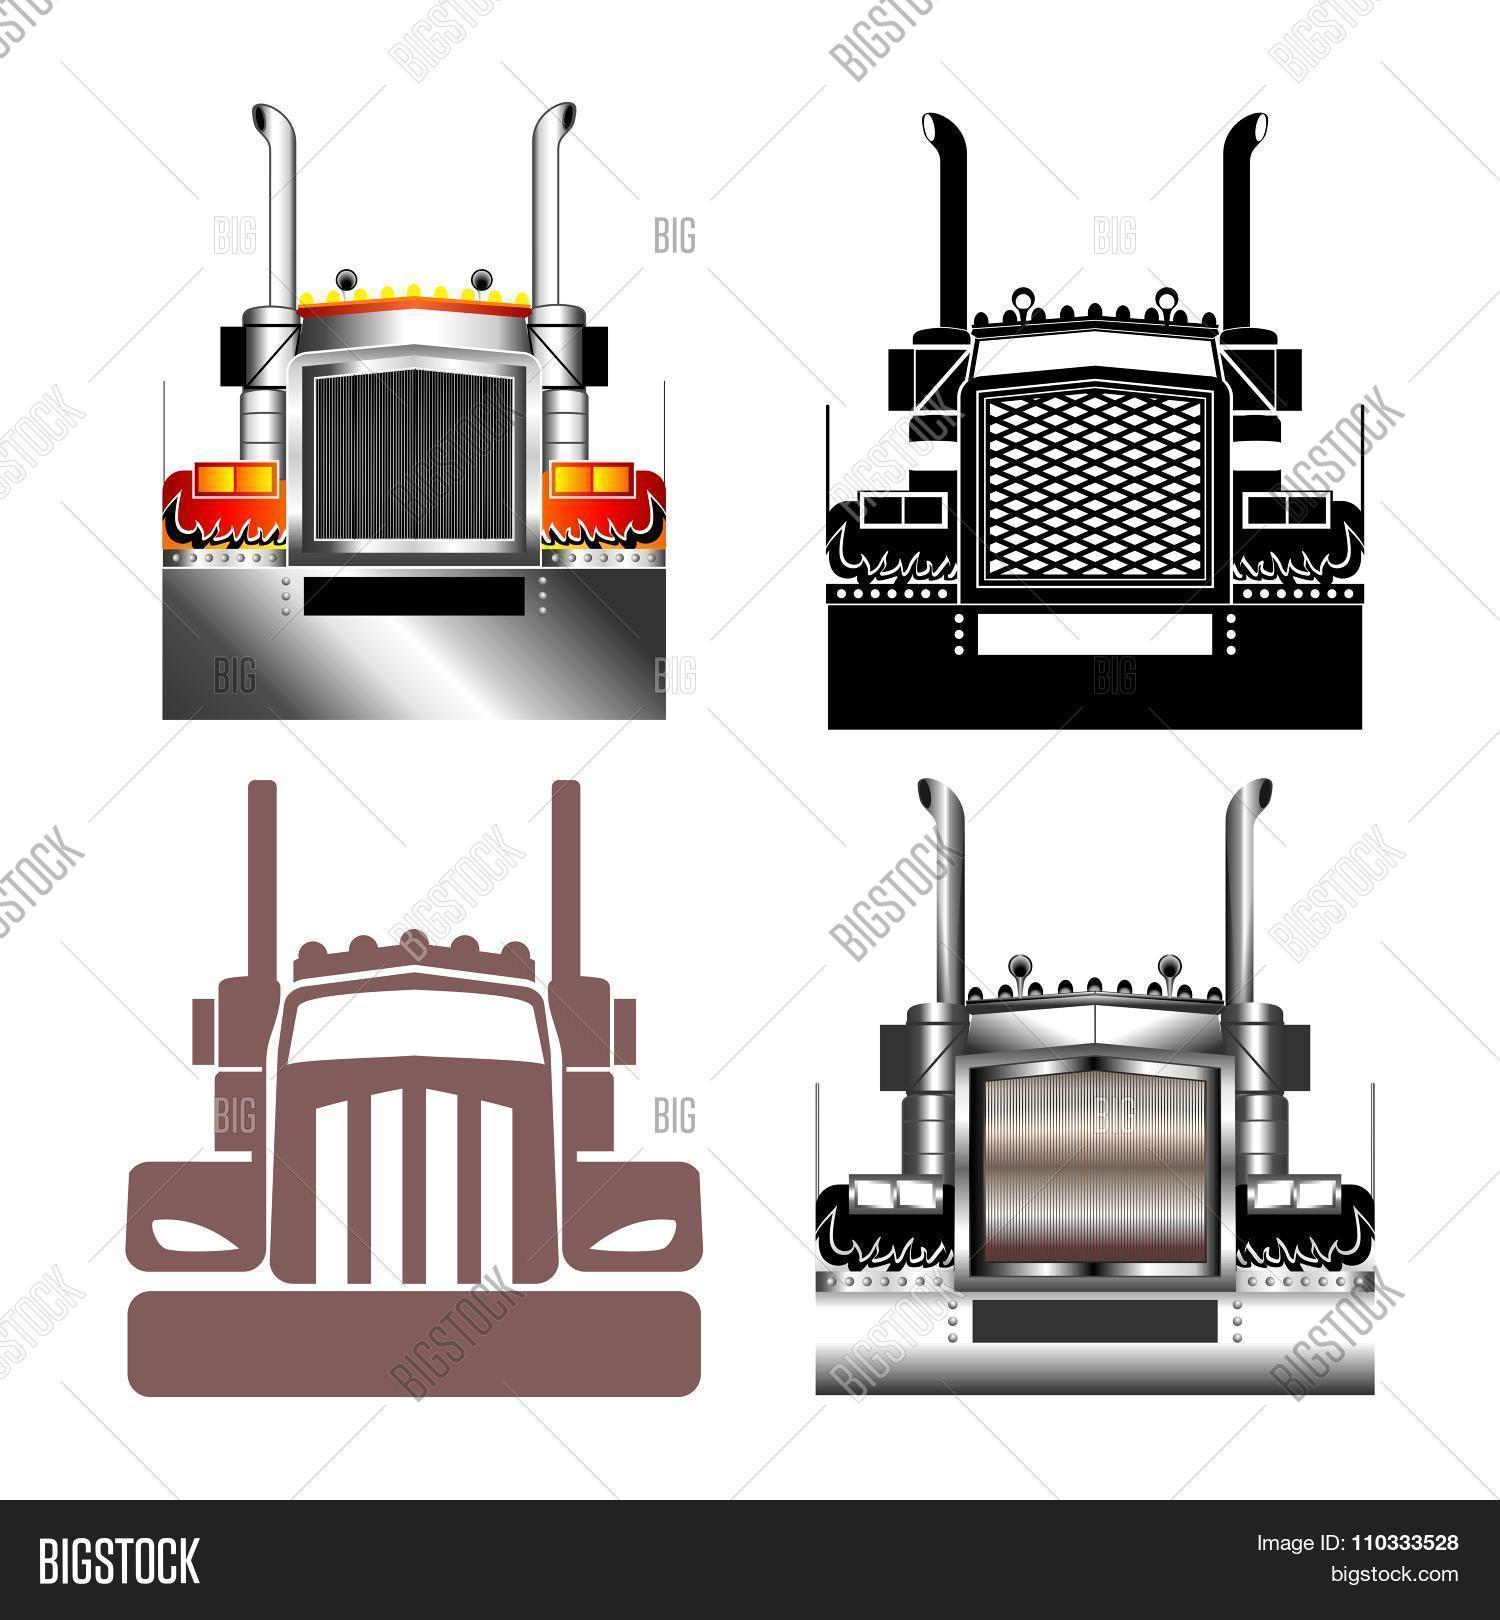 Semi Truck Outline Related Keywords & Suggestions - Semi Truck Outline ...